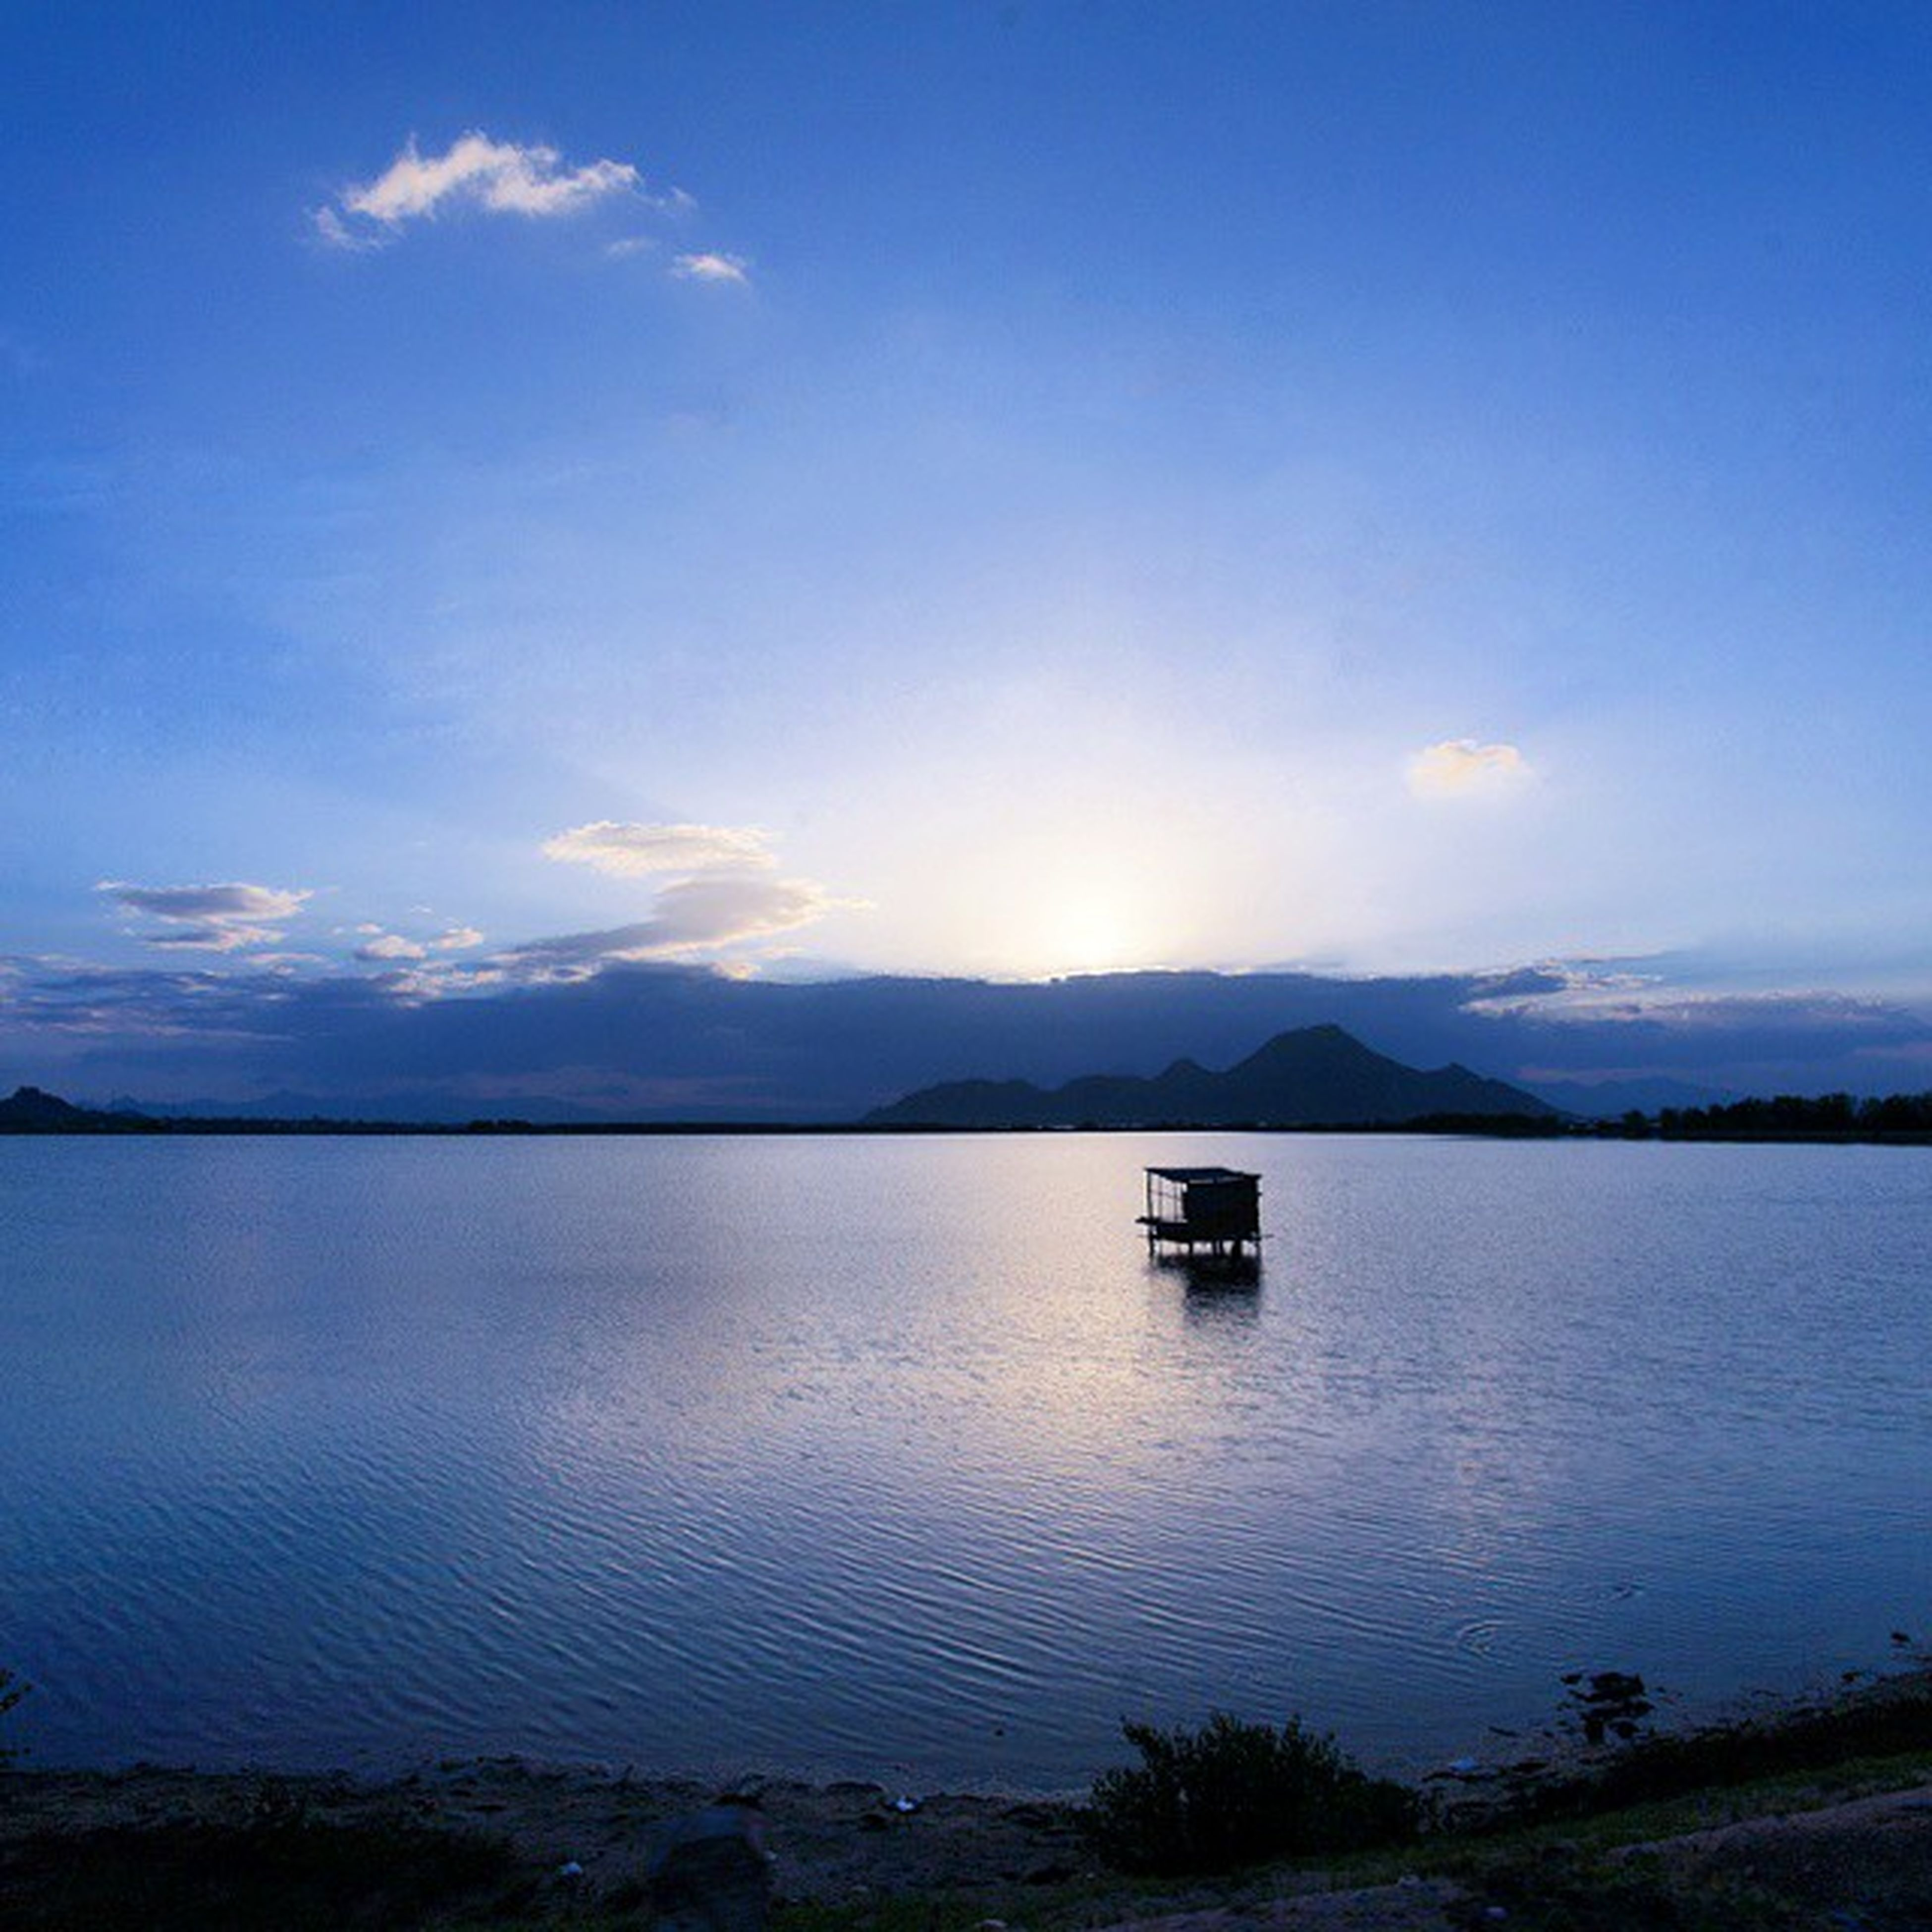 water, tranquil scene, tranquility, scenics, lake, mountain, sky, beauty in nature, reflection, blue, nature, mountain range, calm, idyllic, cloud, waterfront, non-urban scene, cloud - sky, outdoors, no people